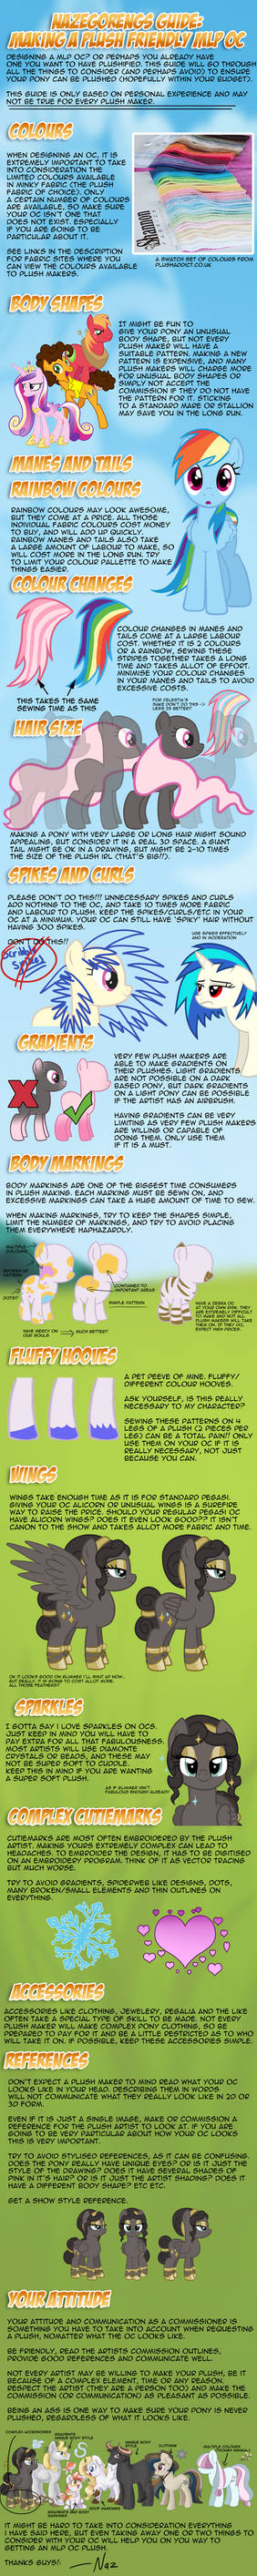 Naz's Guide - How to Make a Plush Friendly MLP OC